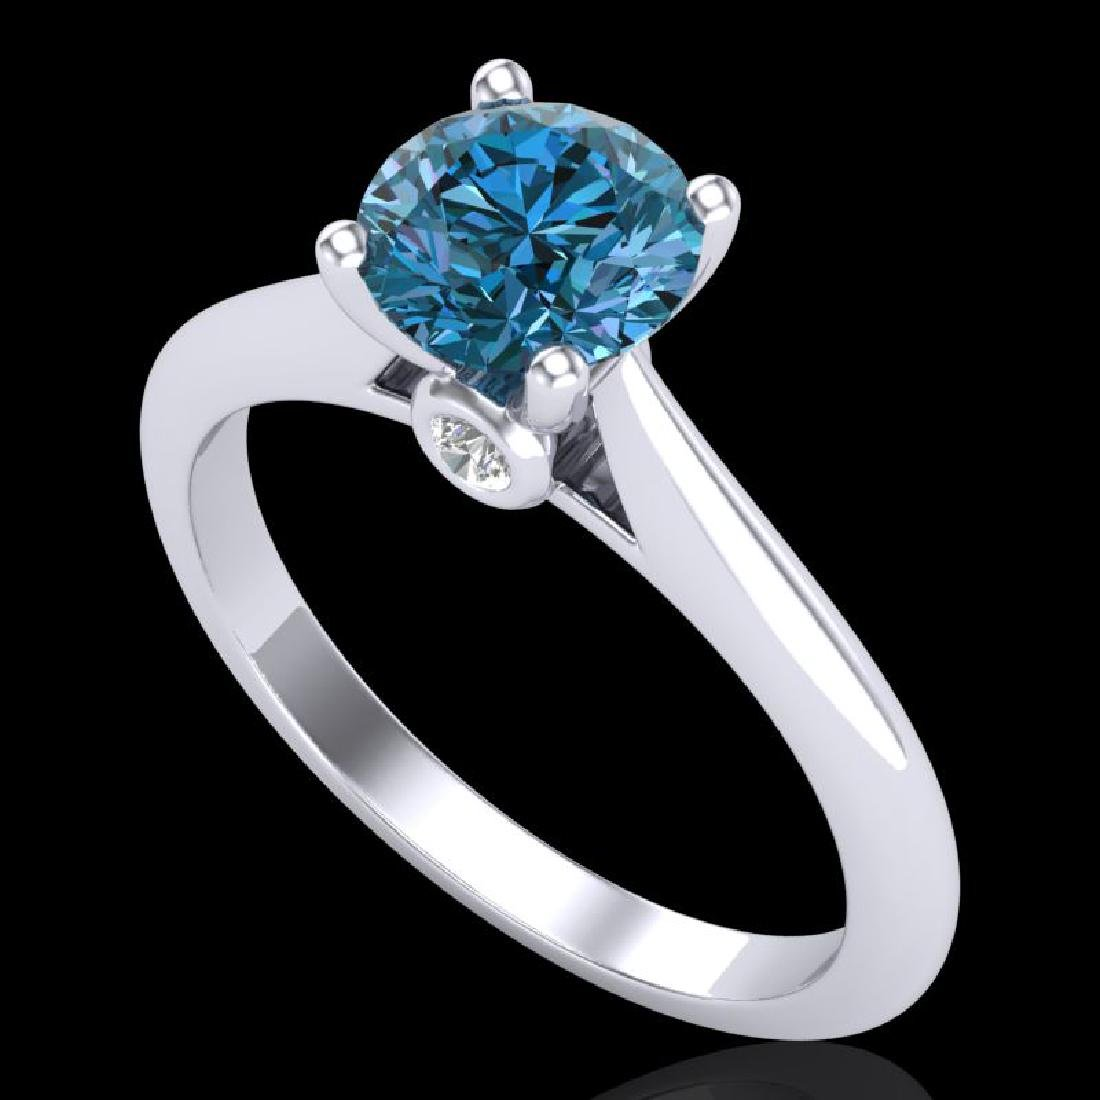 1.08 CTW Fancy Intense Blue Diamond Solitaire Art Deco